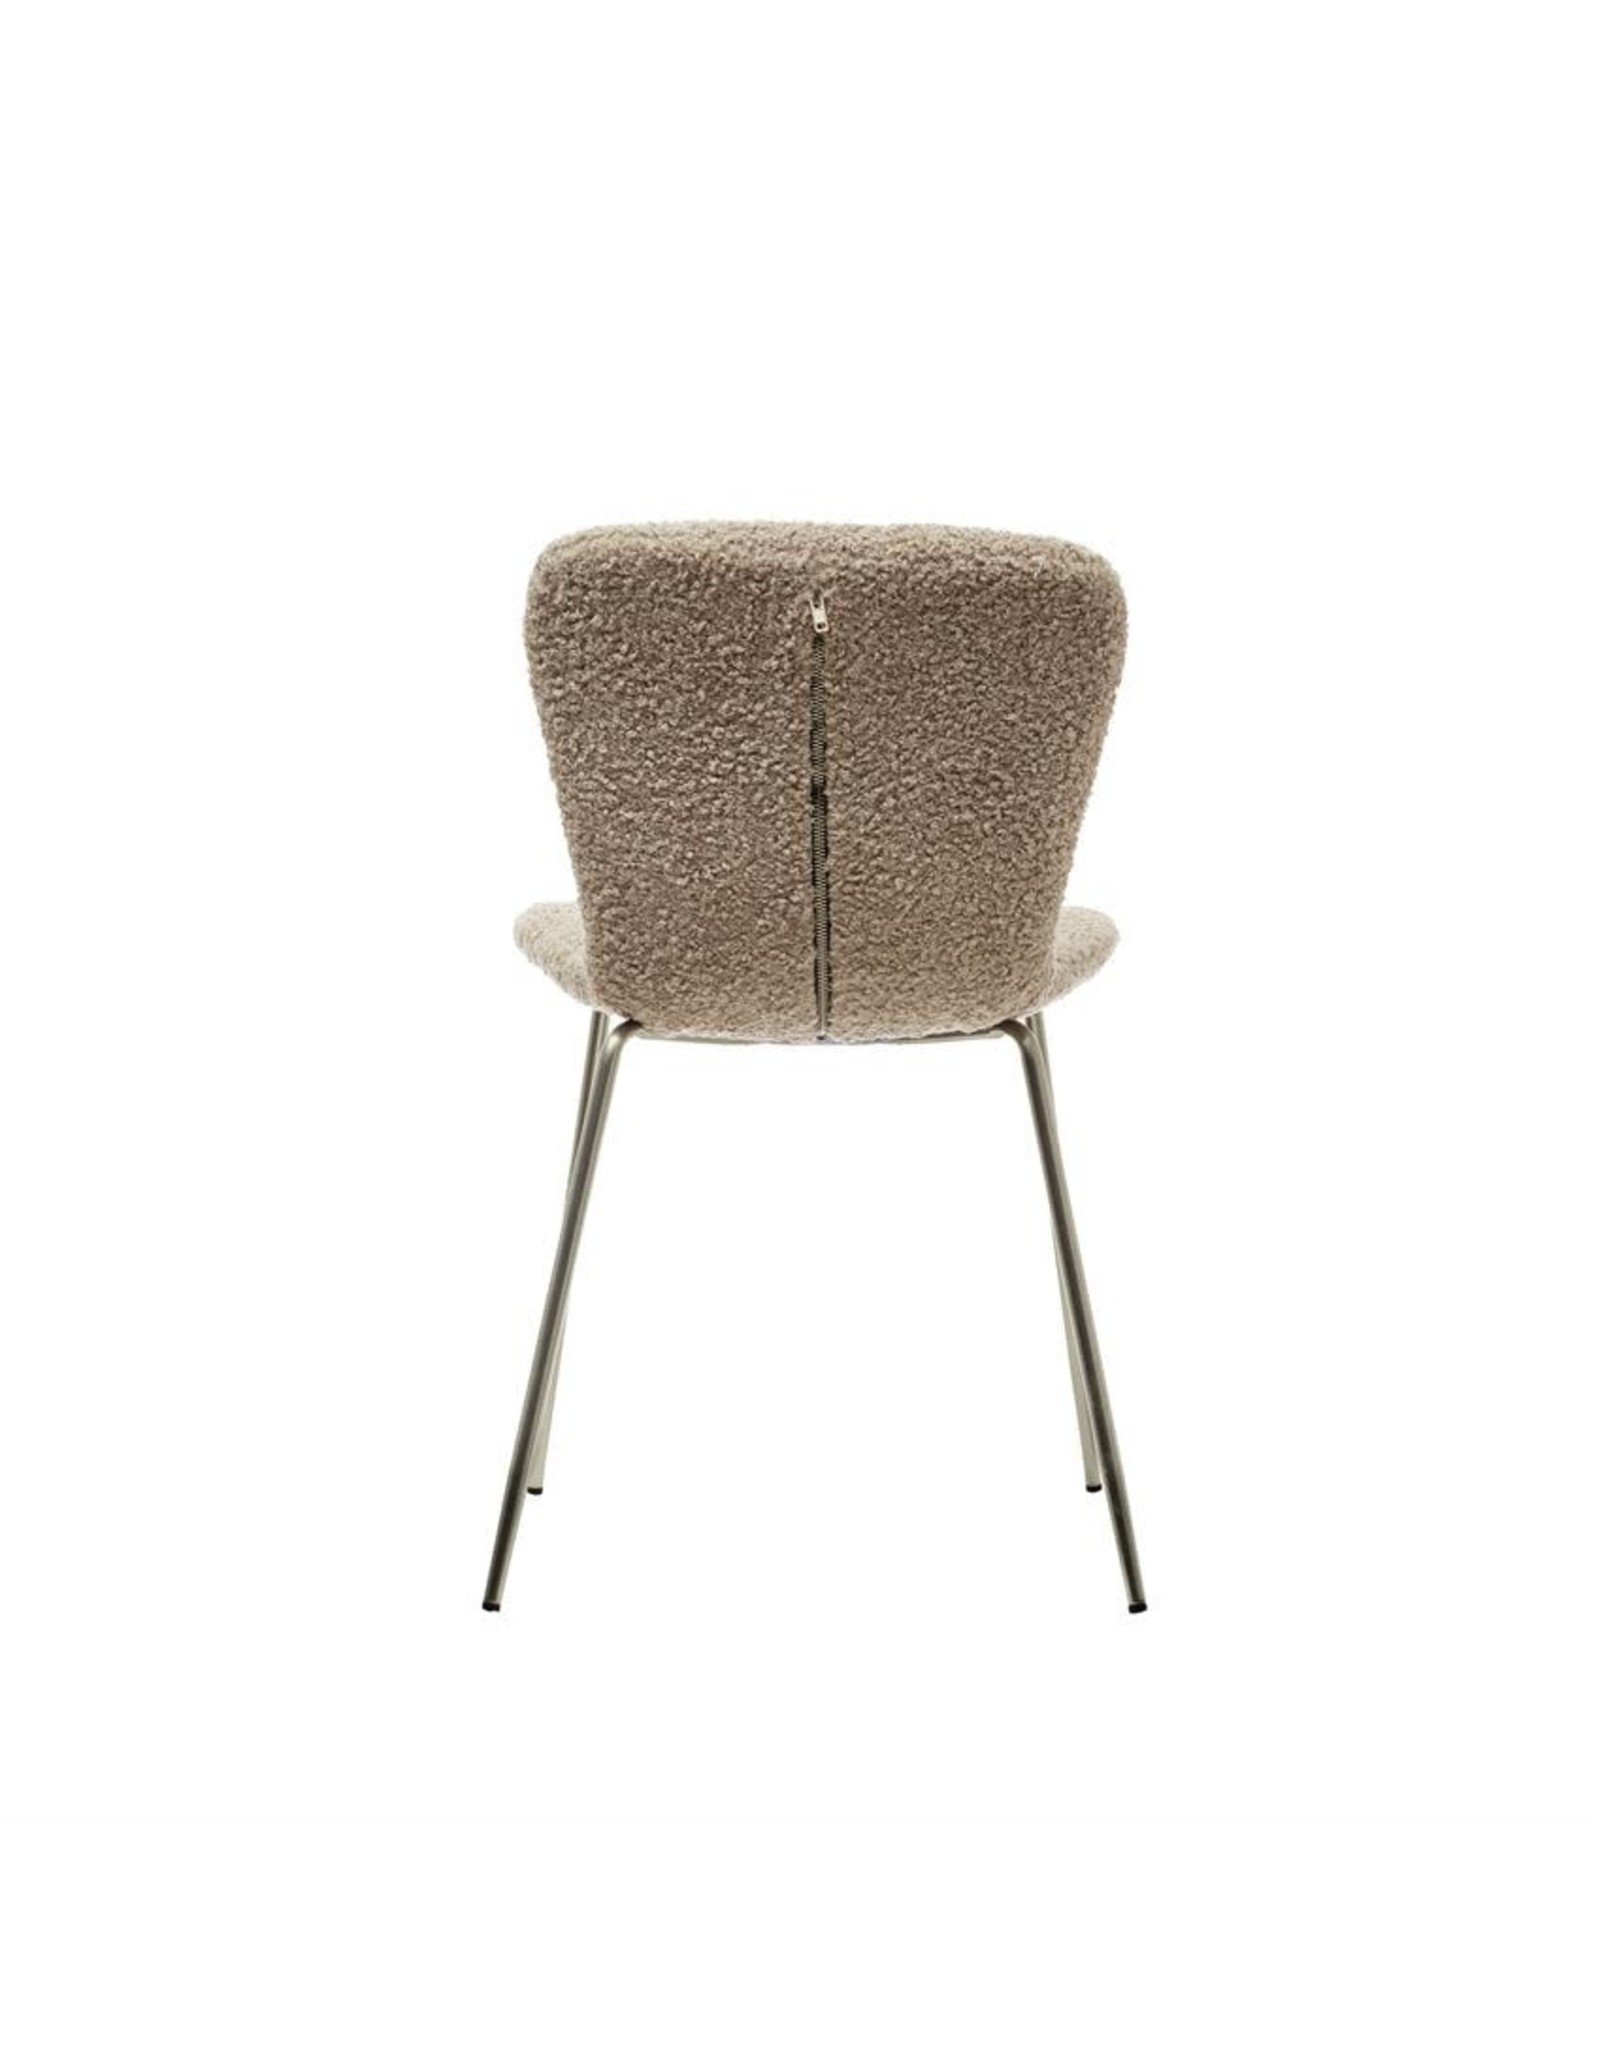 Bloomingville Boucle Fabric Upholstered Chair - Cream